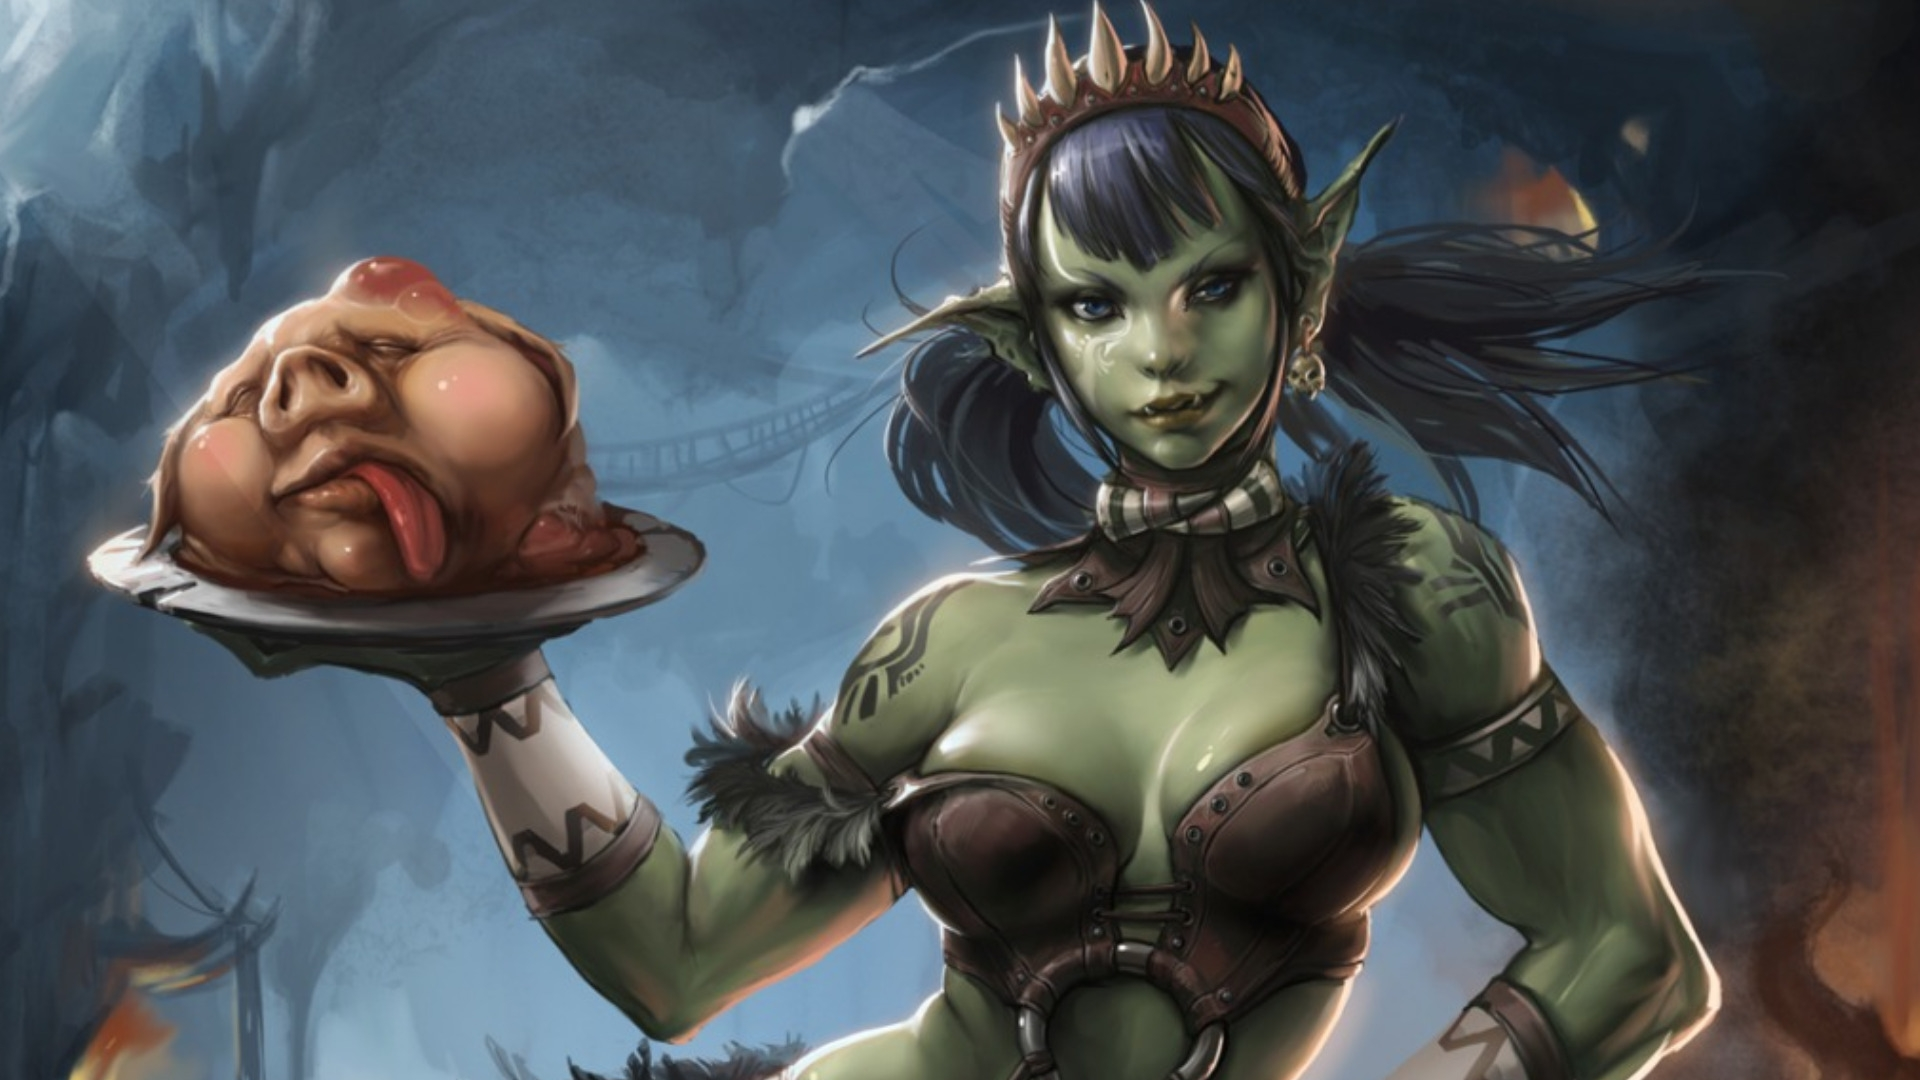 Hentai elf and orc xxx nudes pic